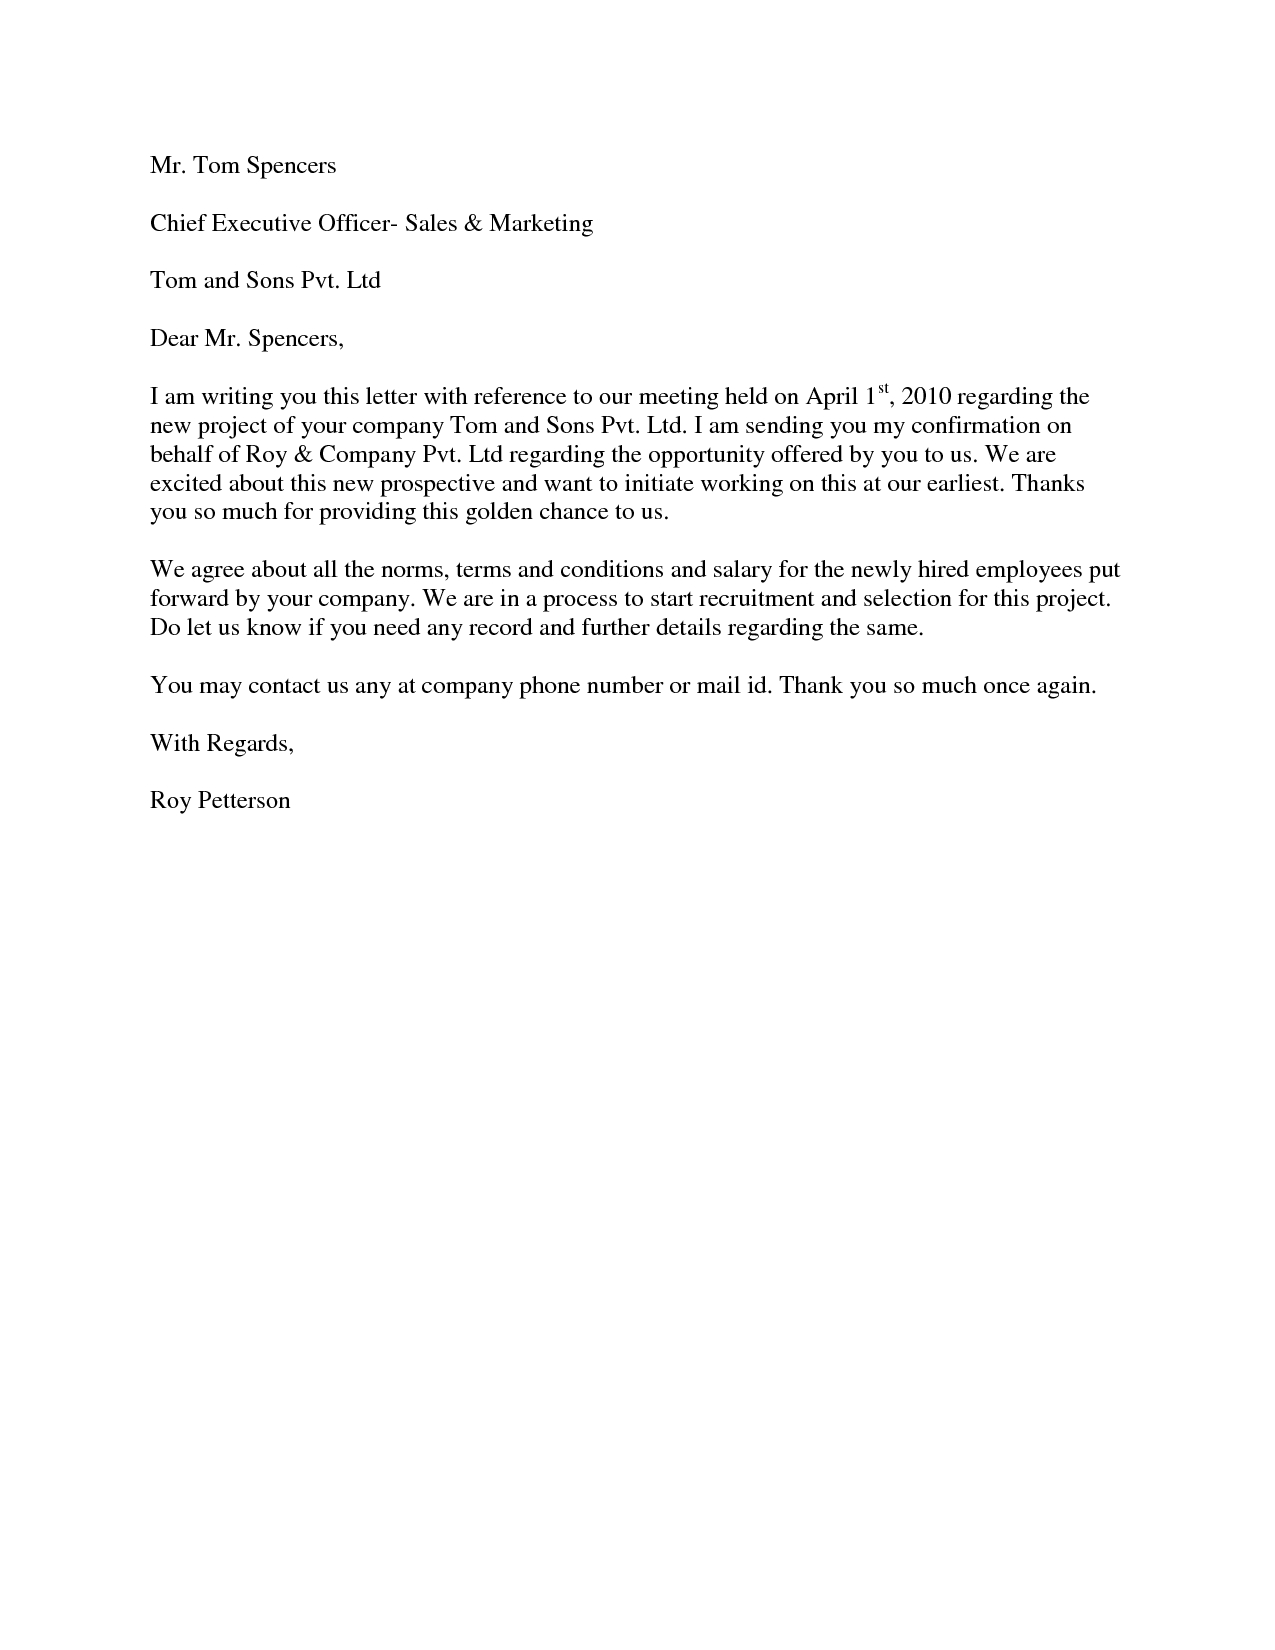 Employment Acceptance Letter Template - Project Acceptance Letter Use This Section to Prepare the Letter